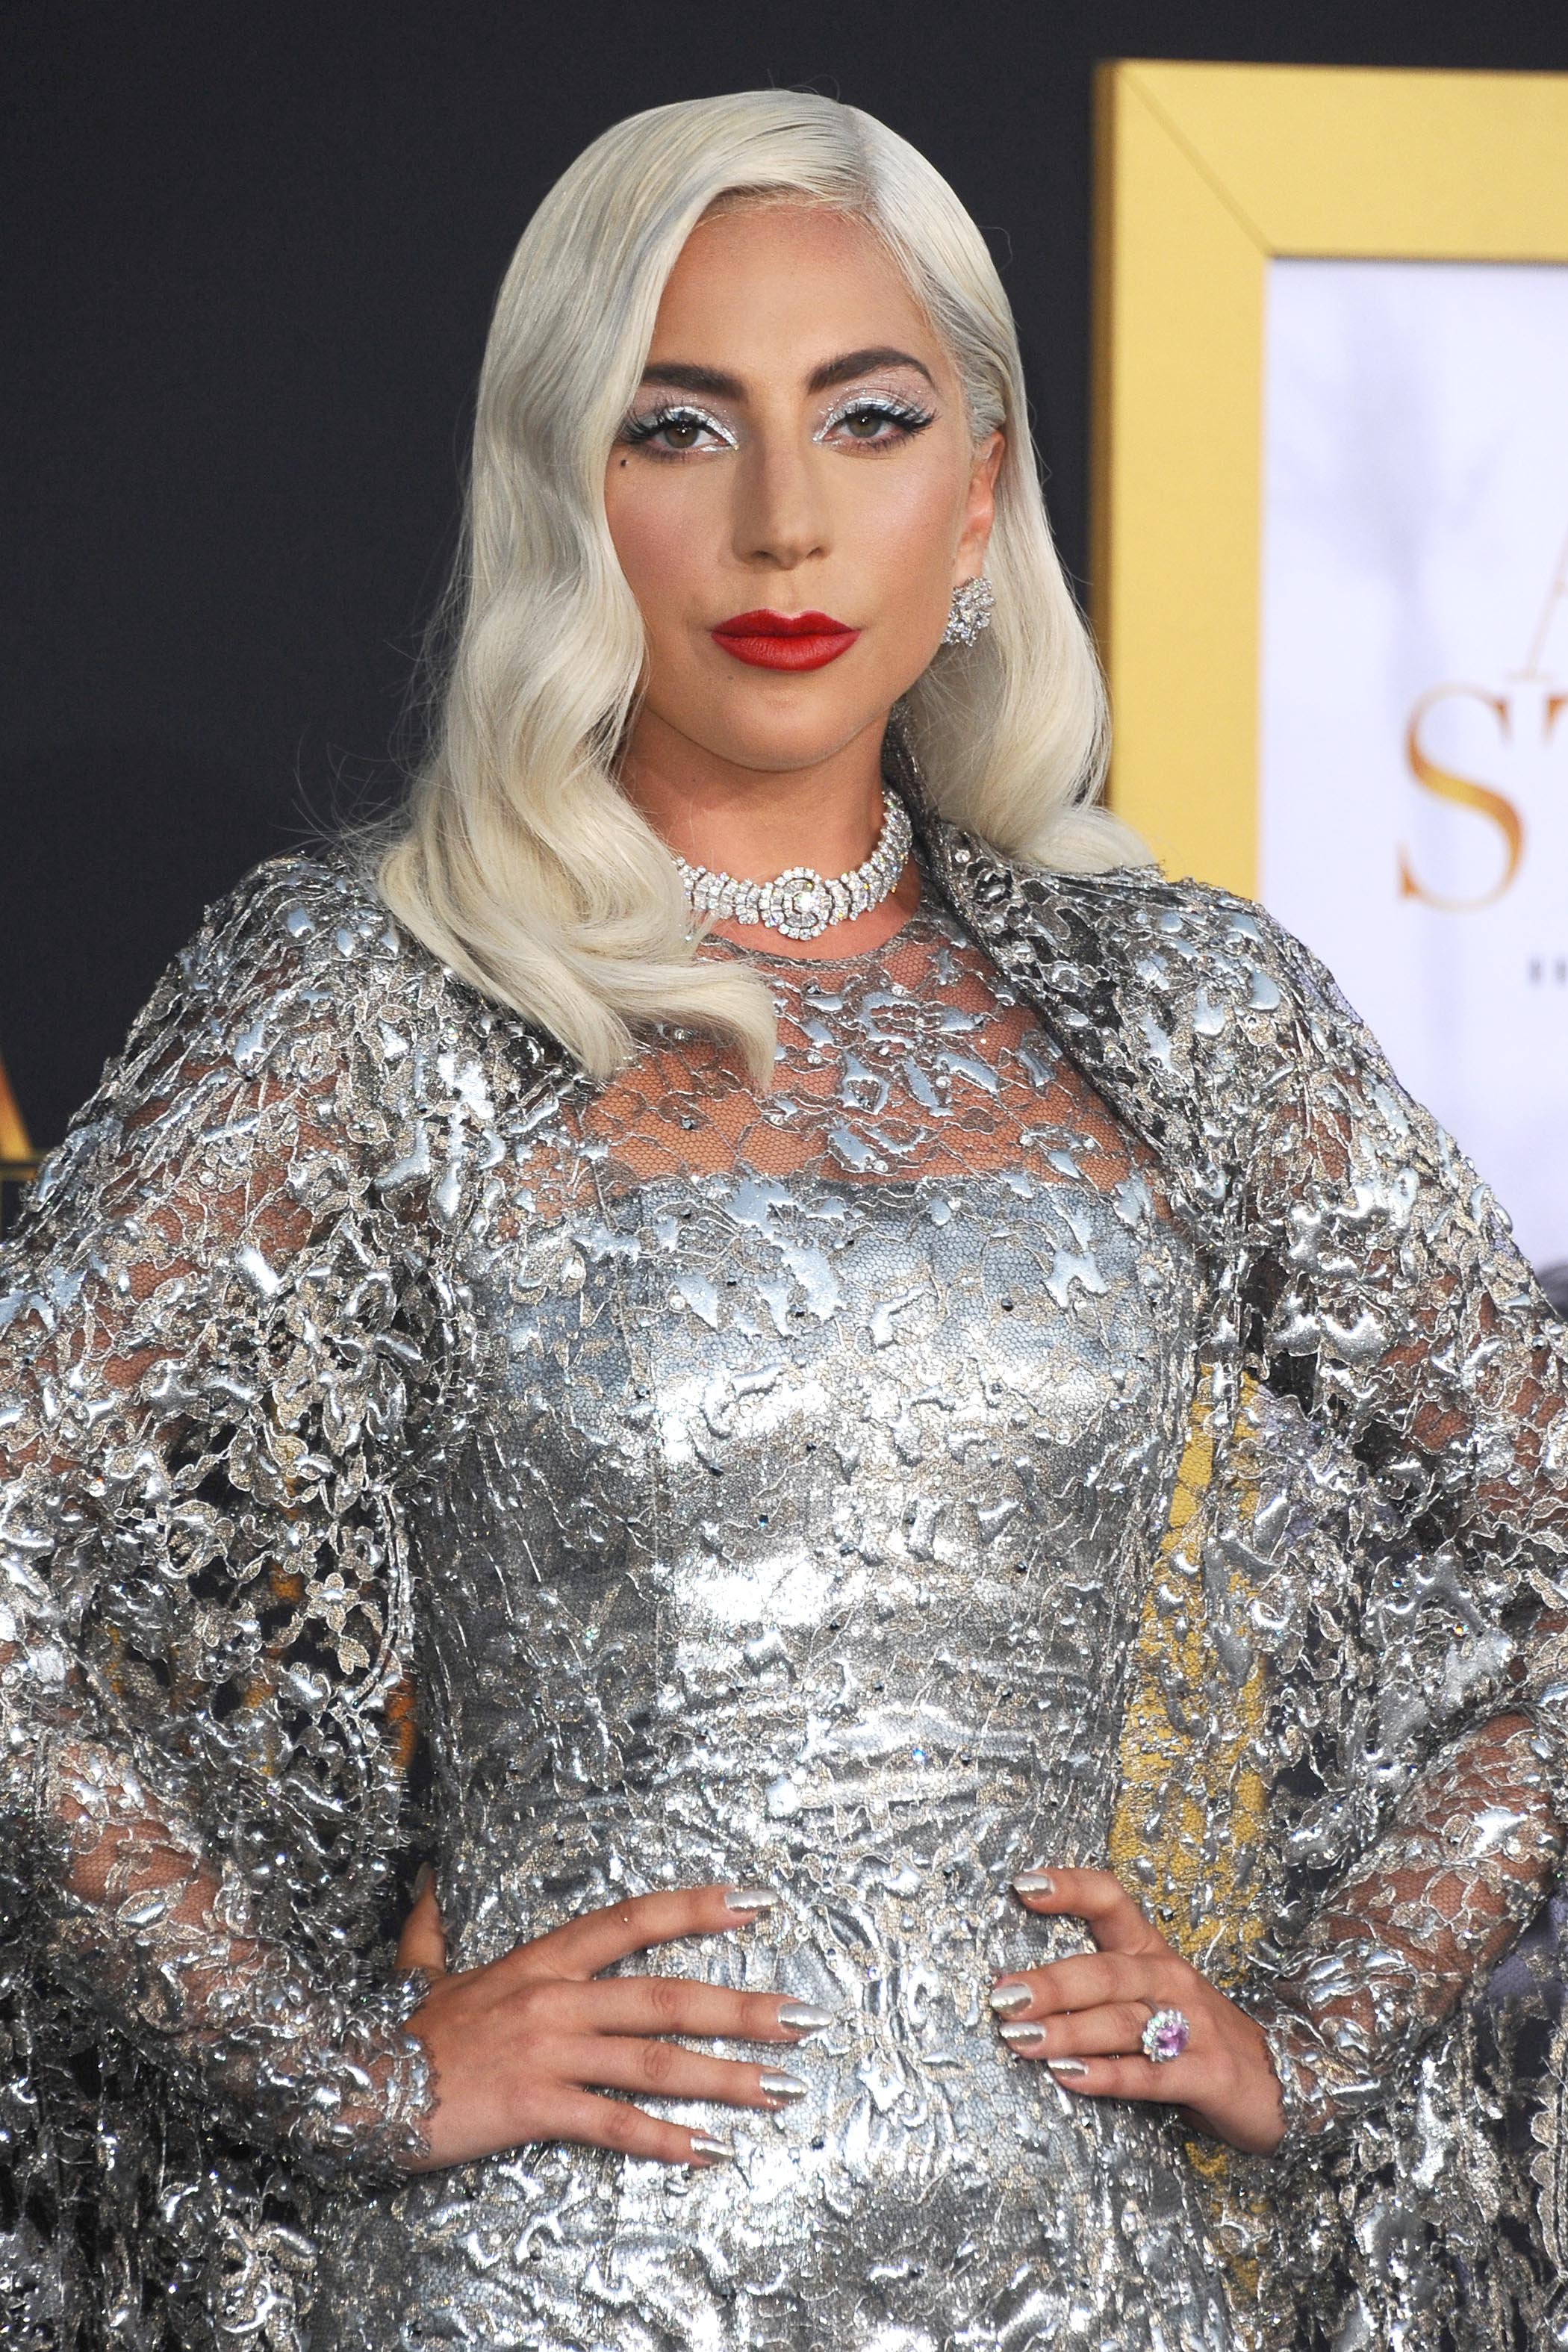 Lady Gaga Wears Platinum Jewellery To The Los Angeles Premiere Of A Star Is Born